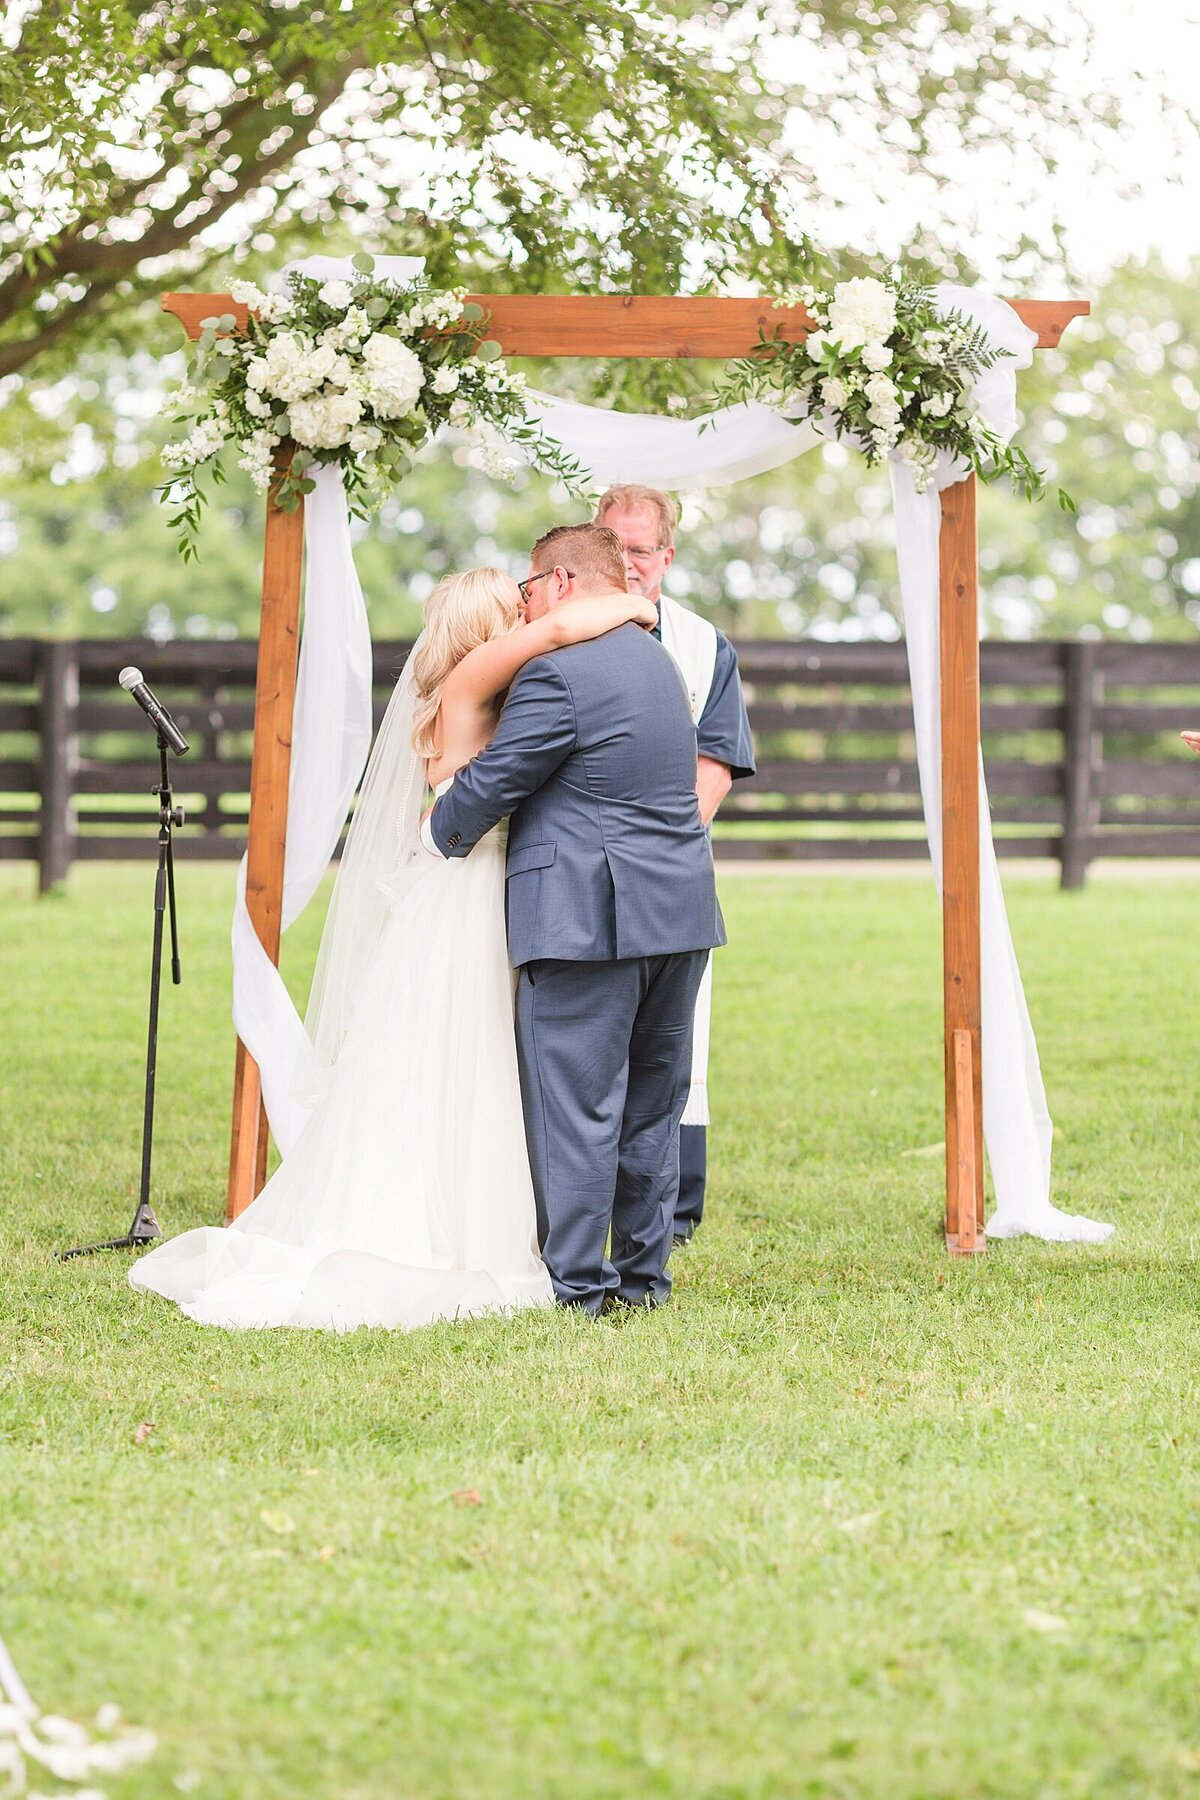 Kara Webster Photography | Mac & Maggie | Bradshaw-Duncan House Louisville, KY Wedding Photographer_0063